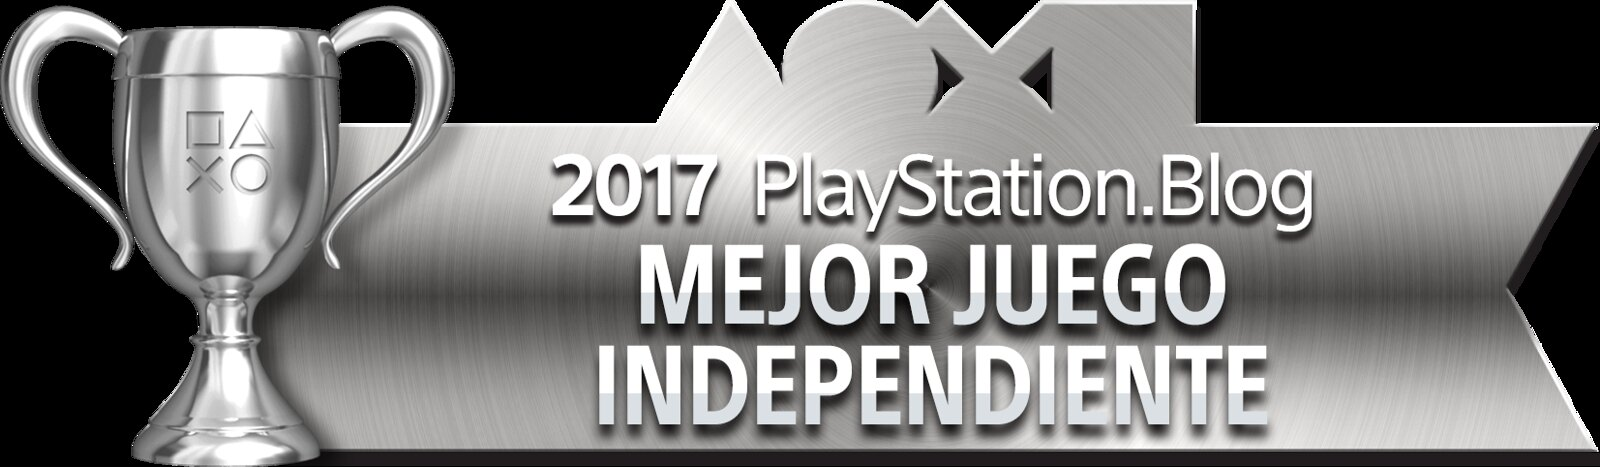 PlayStation Blog Game of the Year 2017 - Best Independent Game (Silver)